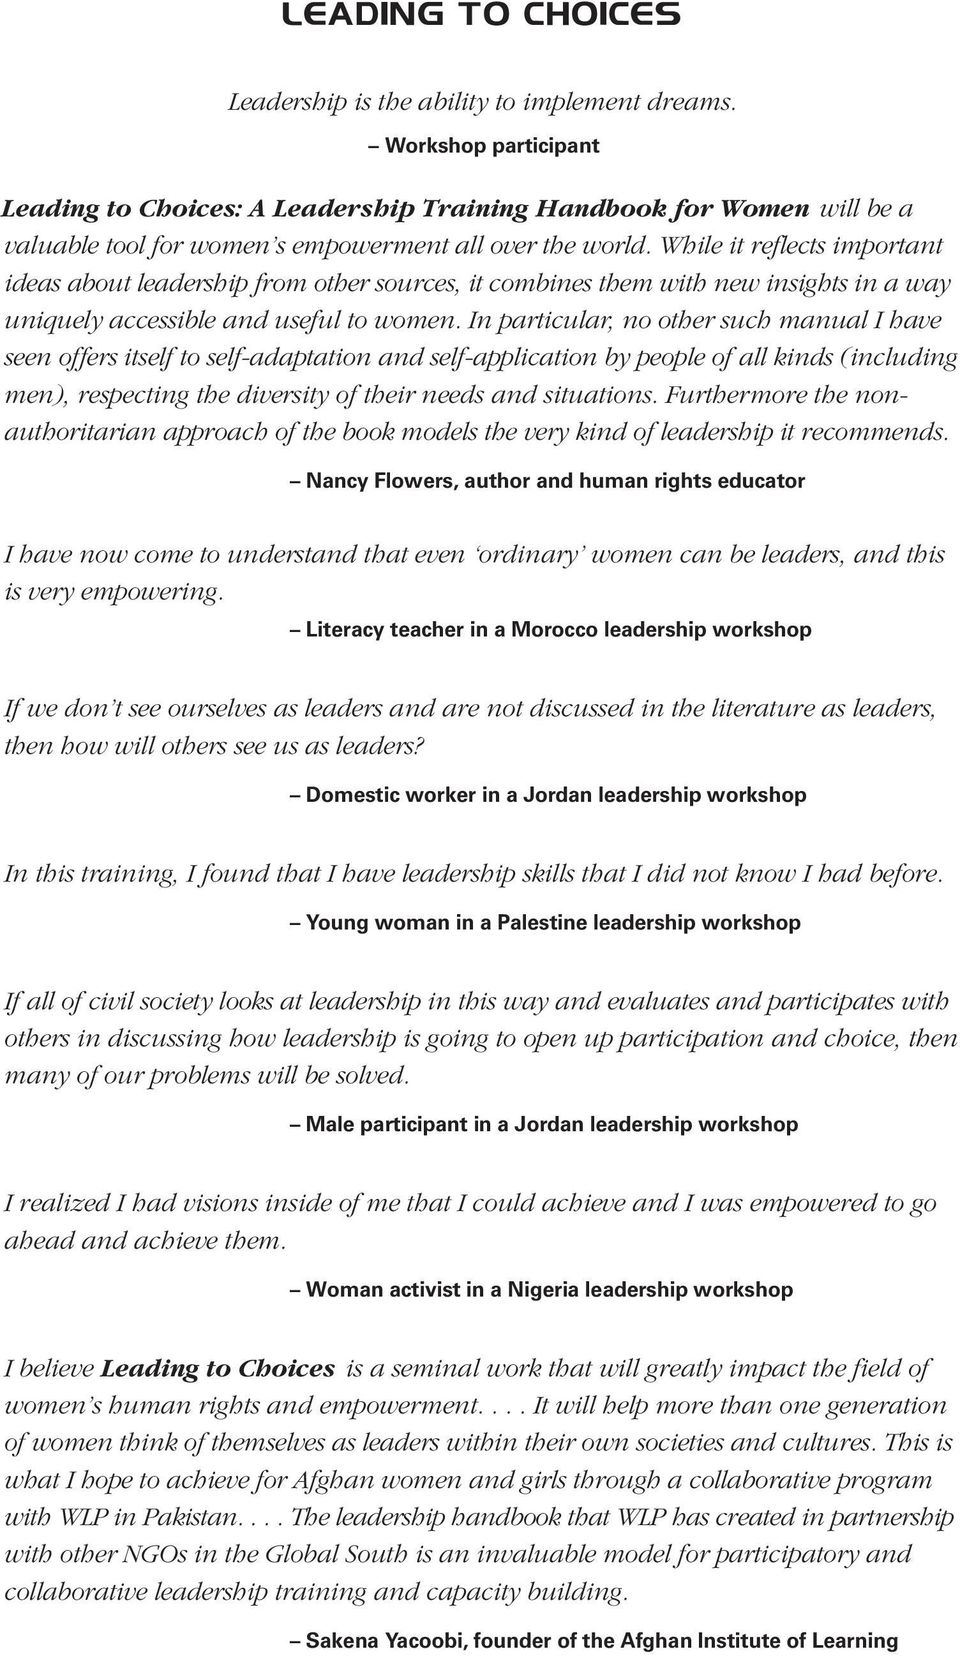 leading to choices. a leadership training handbook for women - pdf